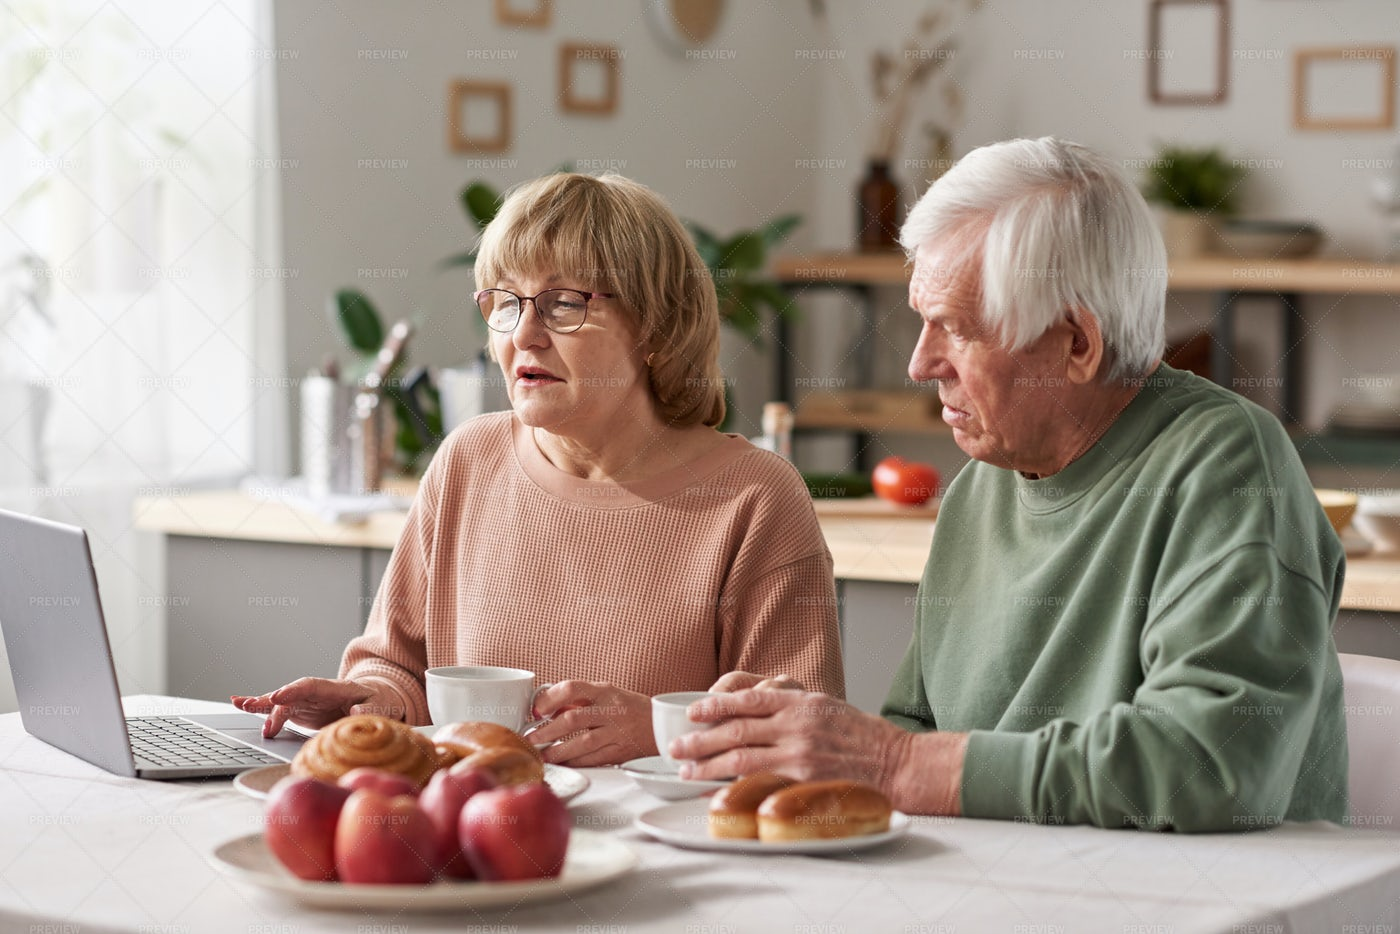 Couple Using Laptop At Home: Stock Photos